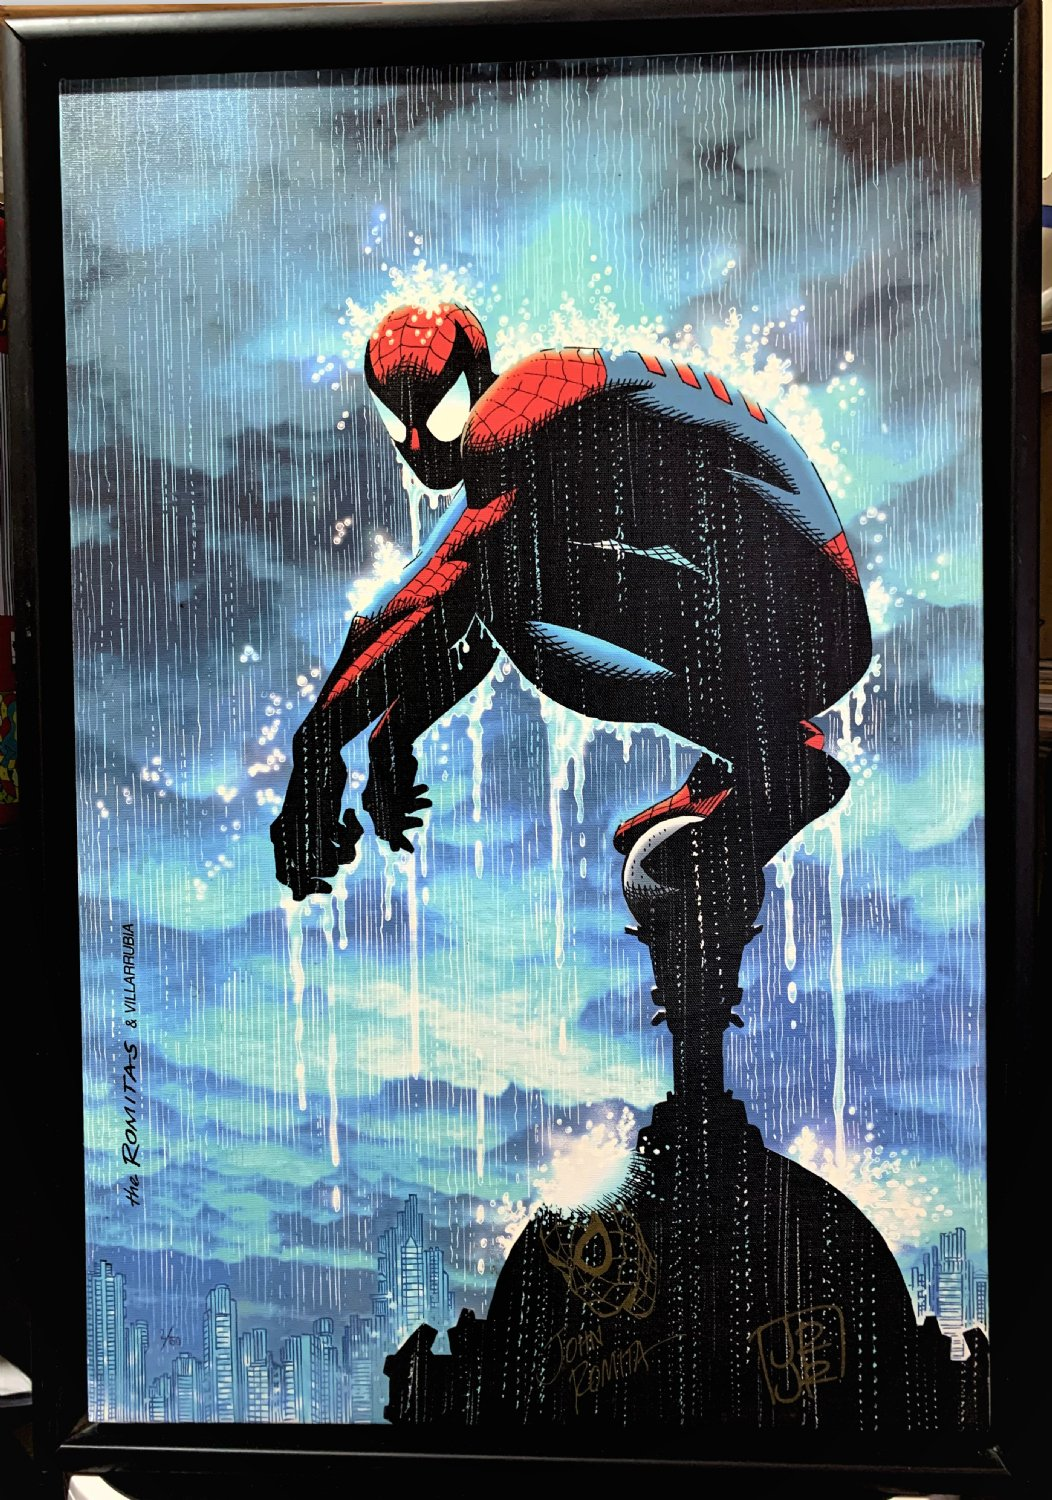 Spider-Man In The Rain Limited Edition Framed, Number 2 of 50, Canvas Giclee (With SPIDERMAN DRAWING BY ROMITA SR) Signed By Both Romita Sr & Jr !) 2000